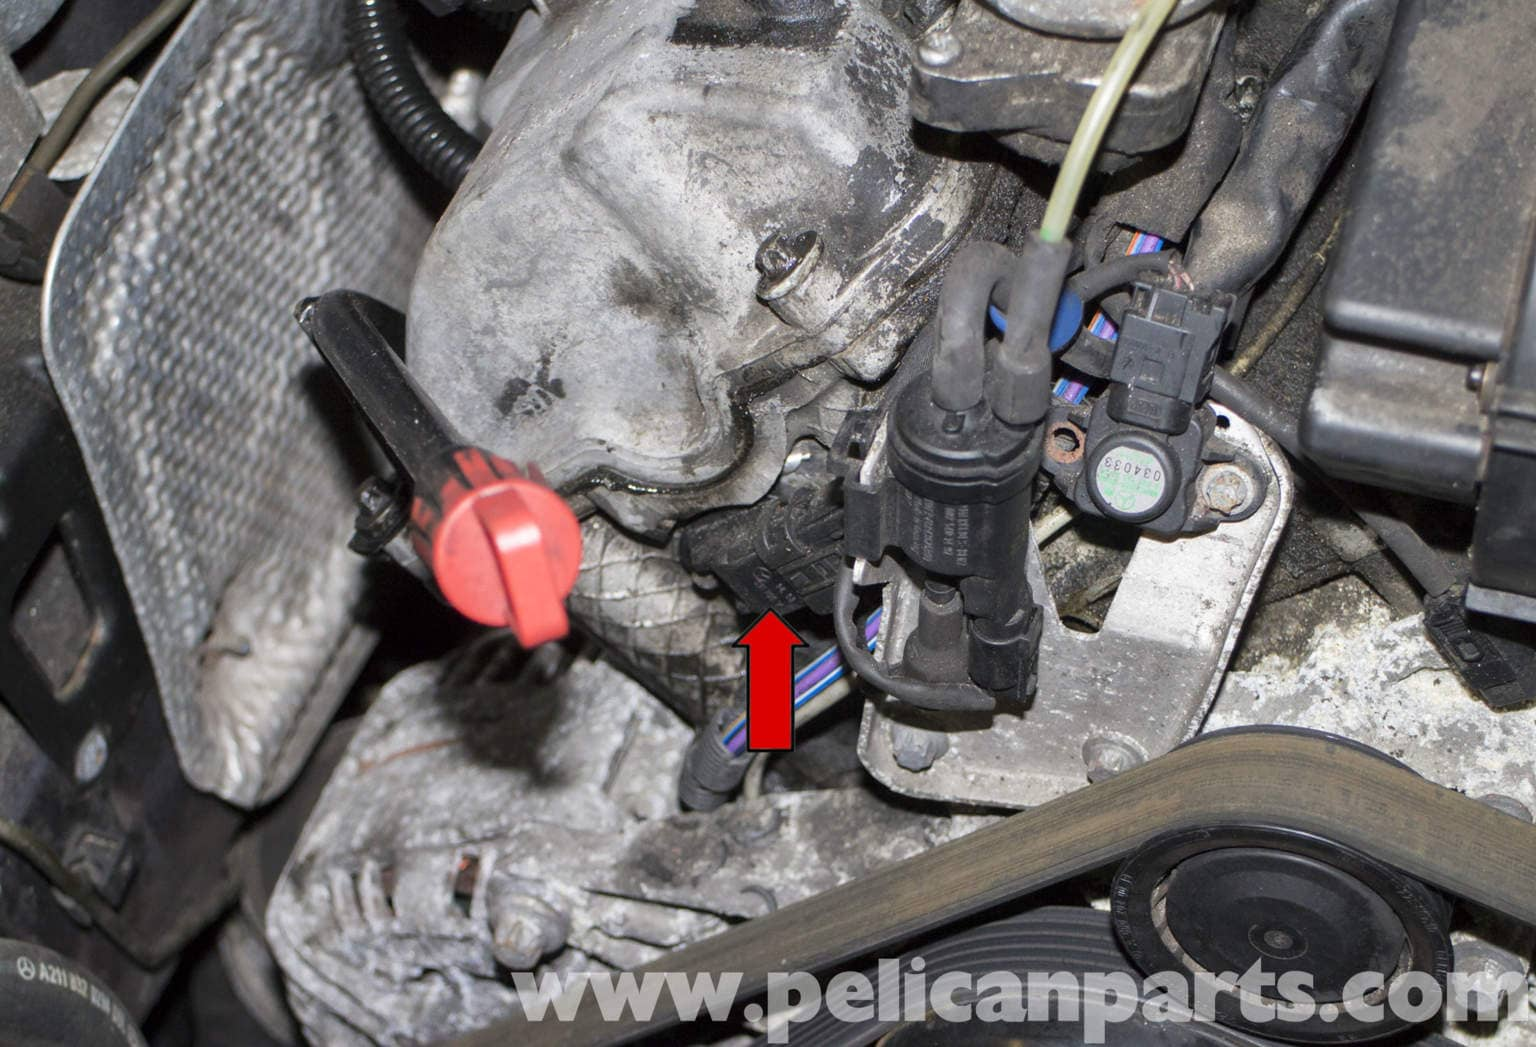 W211 Camshaft Position Sensor >> Mercedes-Benz W211 Camshaft Position Sensor Replacement (2003-2009) E320 | Pelican Parts DIY ...